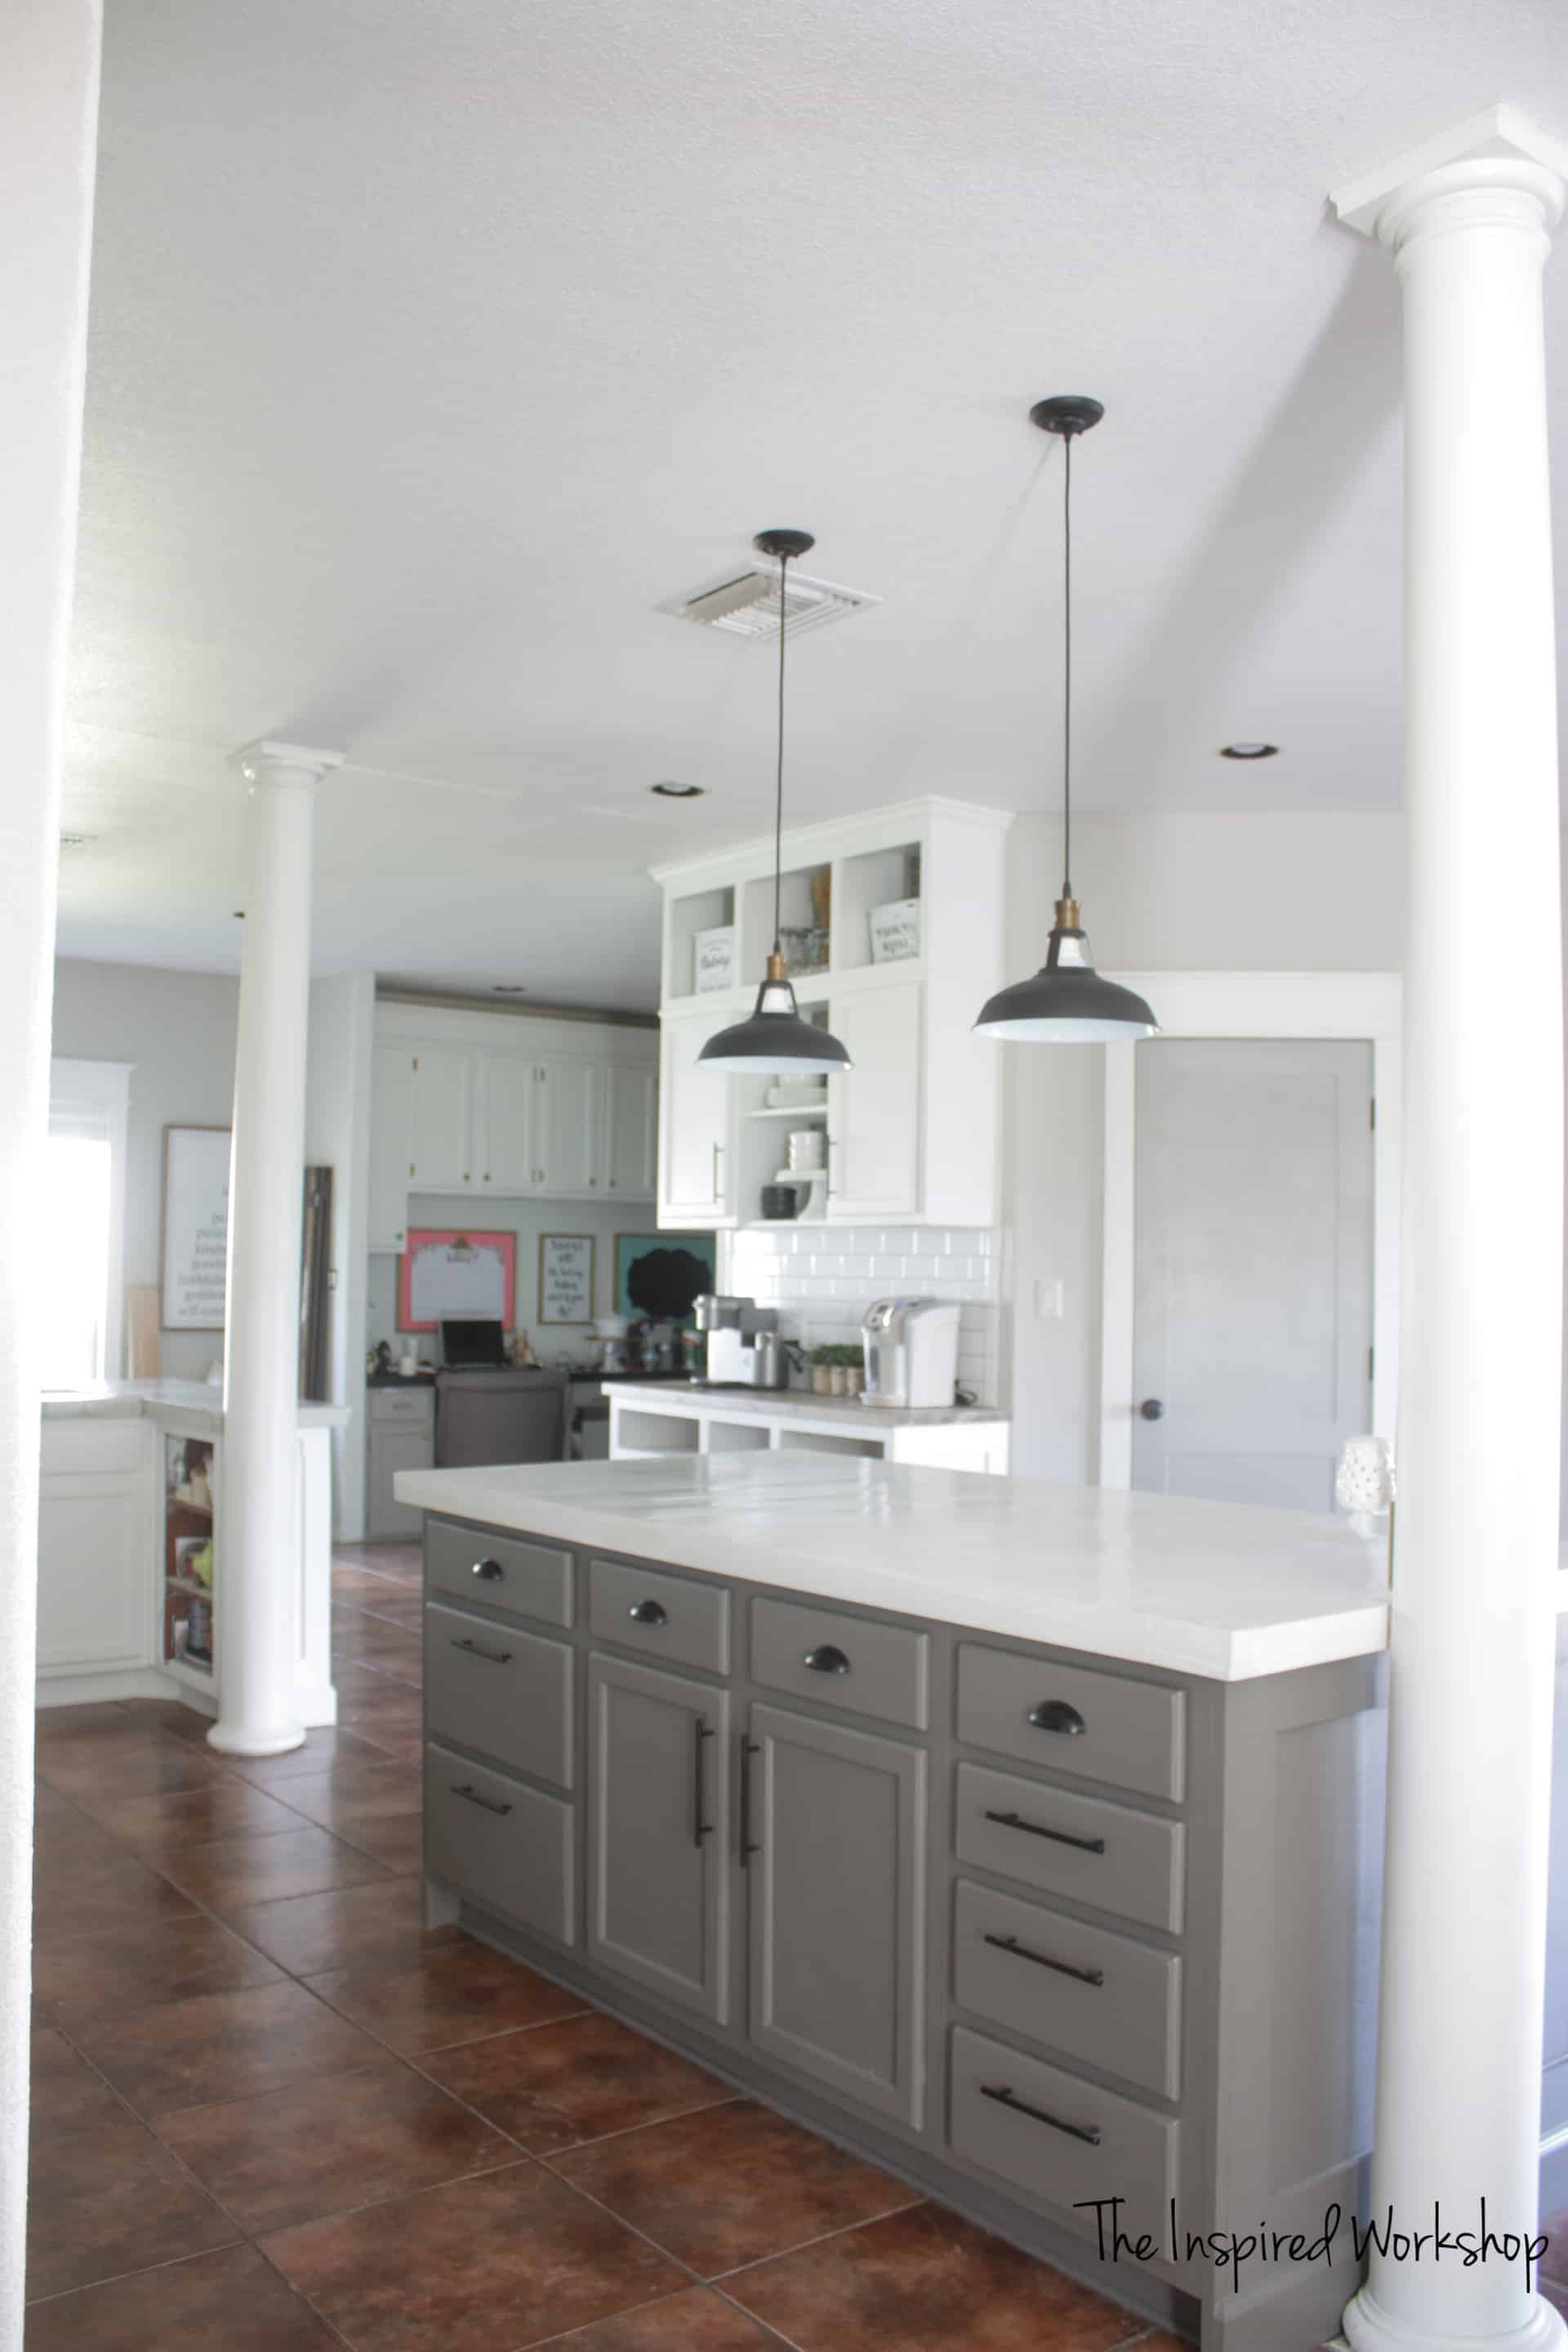 DIY Kitchen Renovation - Kitchen remodel completed on a budget and og beautiful white and gray cabinets along with subway tile and swing arm lampS!